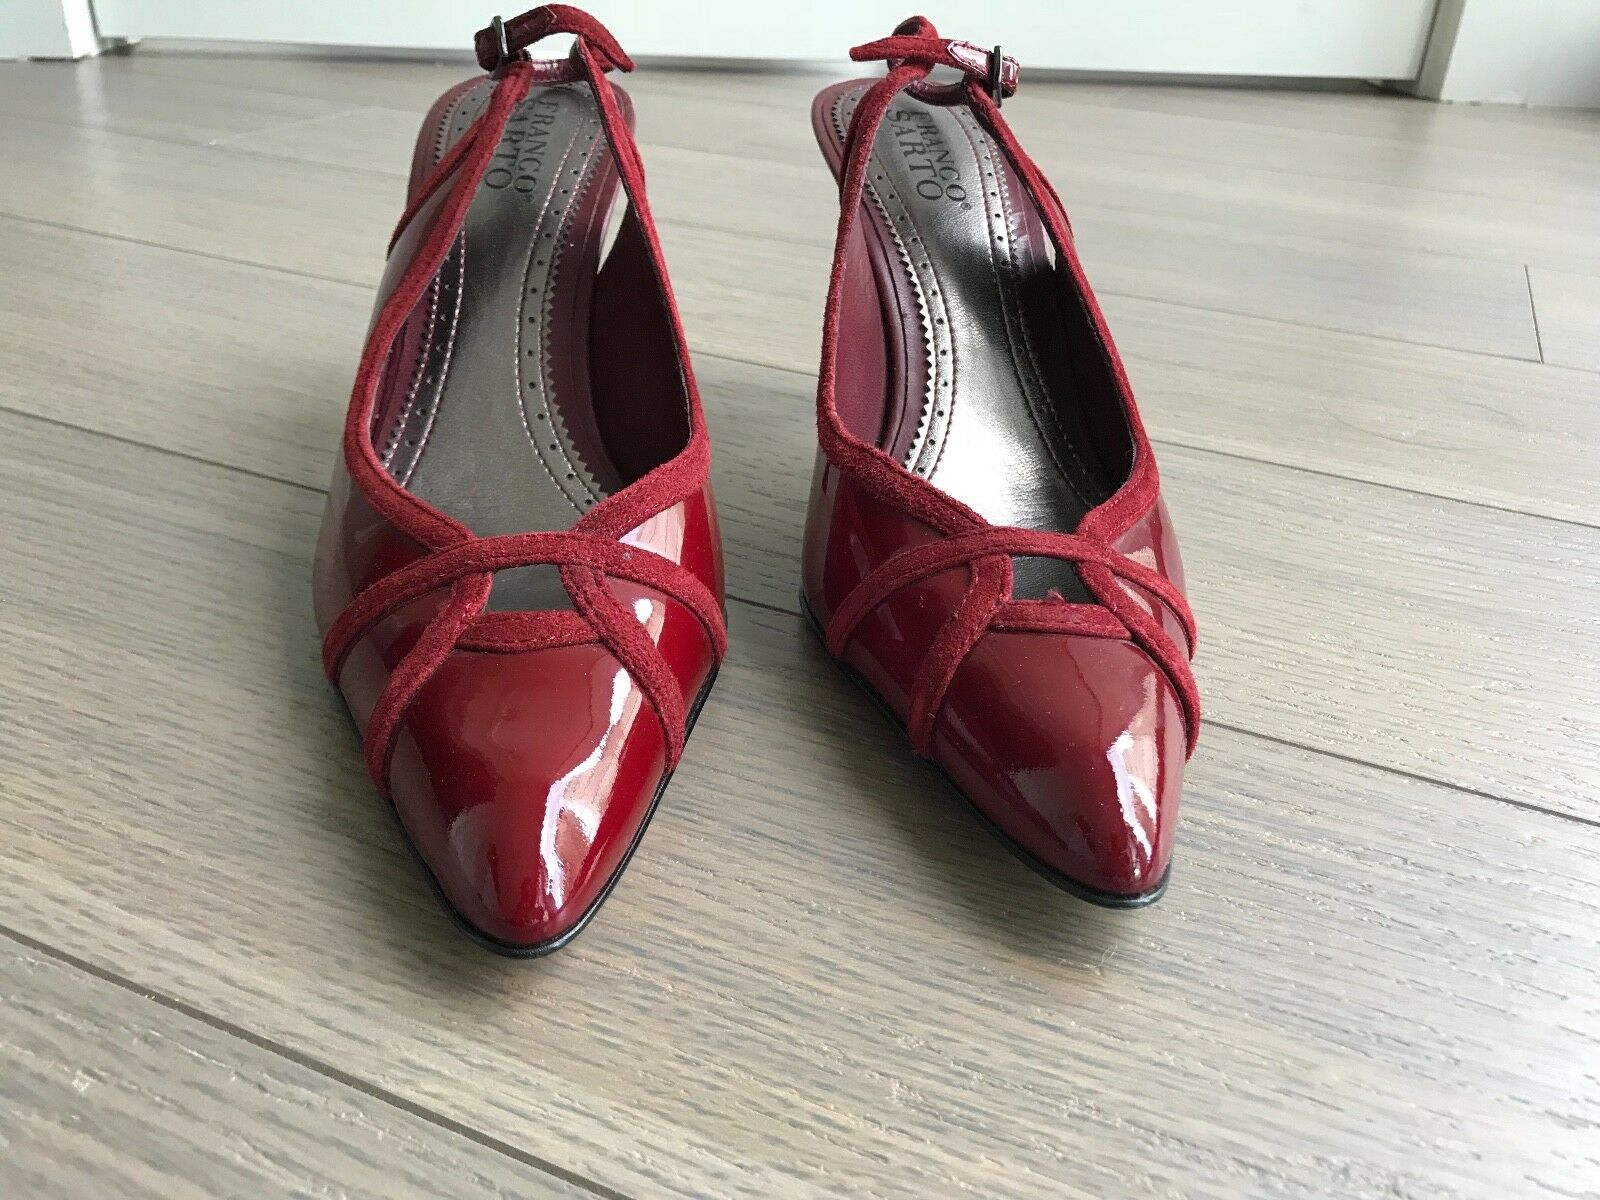 PREOWNED Franco Sarto rot Leather Leather Leather pointed toe slingback heels Größe 8 866111